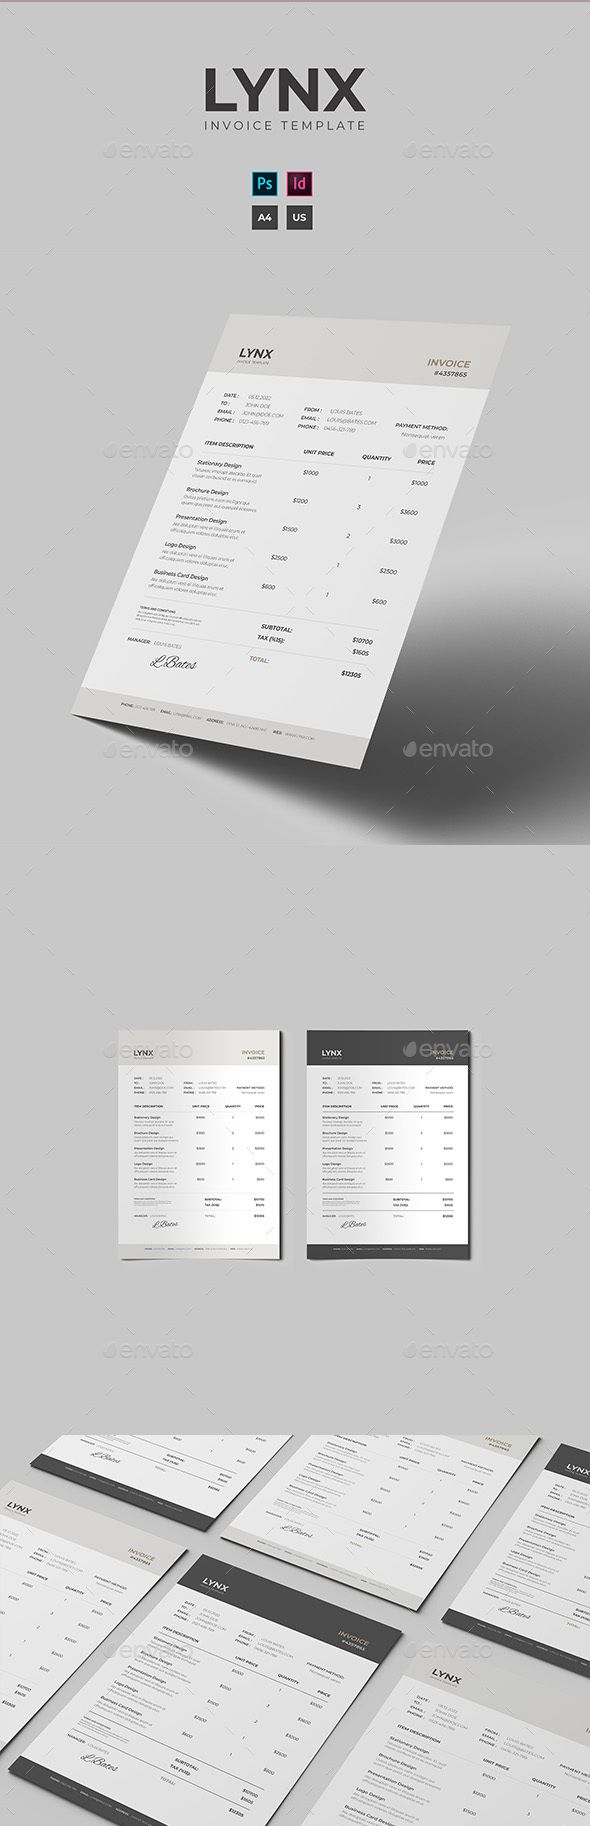 Pin By Best Graphic Design On Proposal Invoice Templates